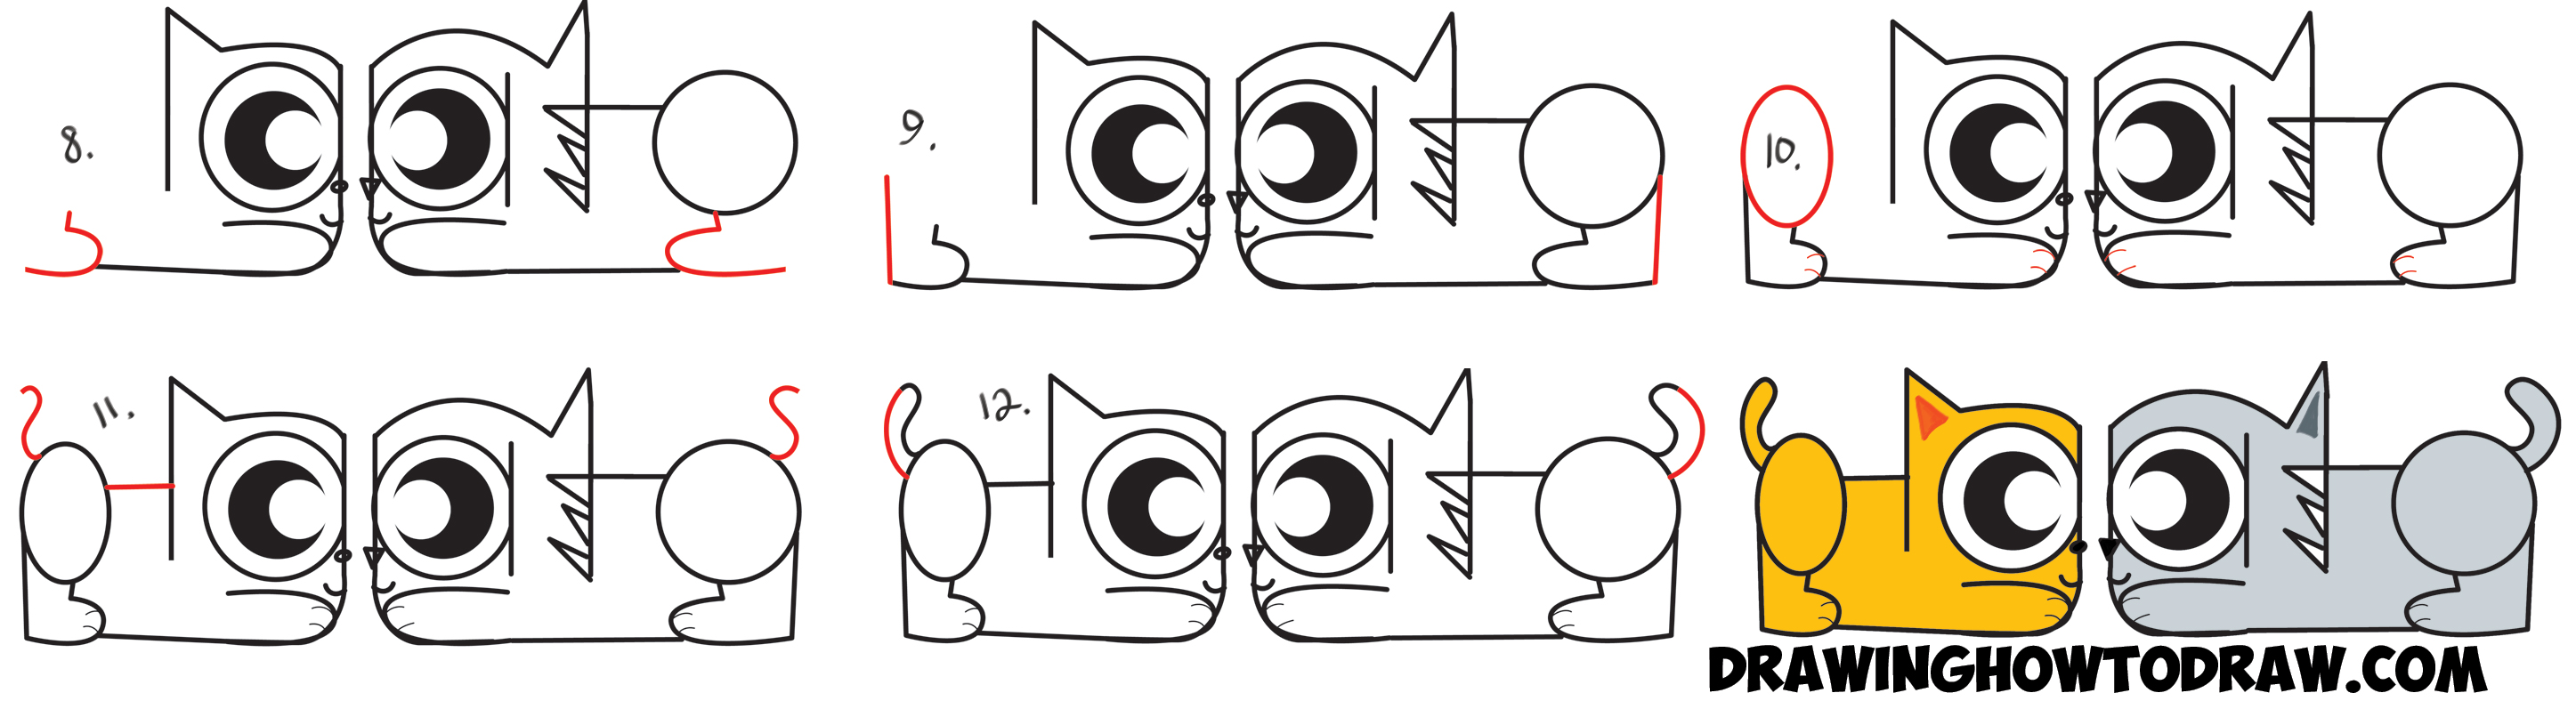 2894x788 How To Draw Cartoon Cats From The Spanish Word Gato